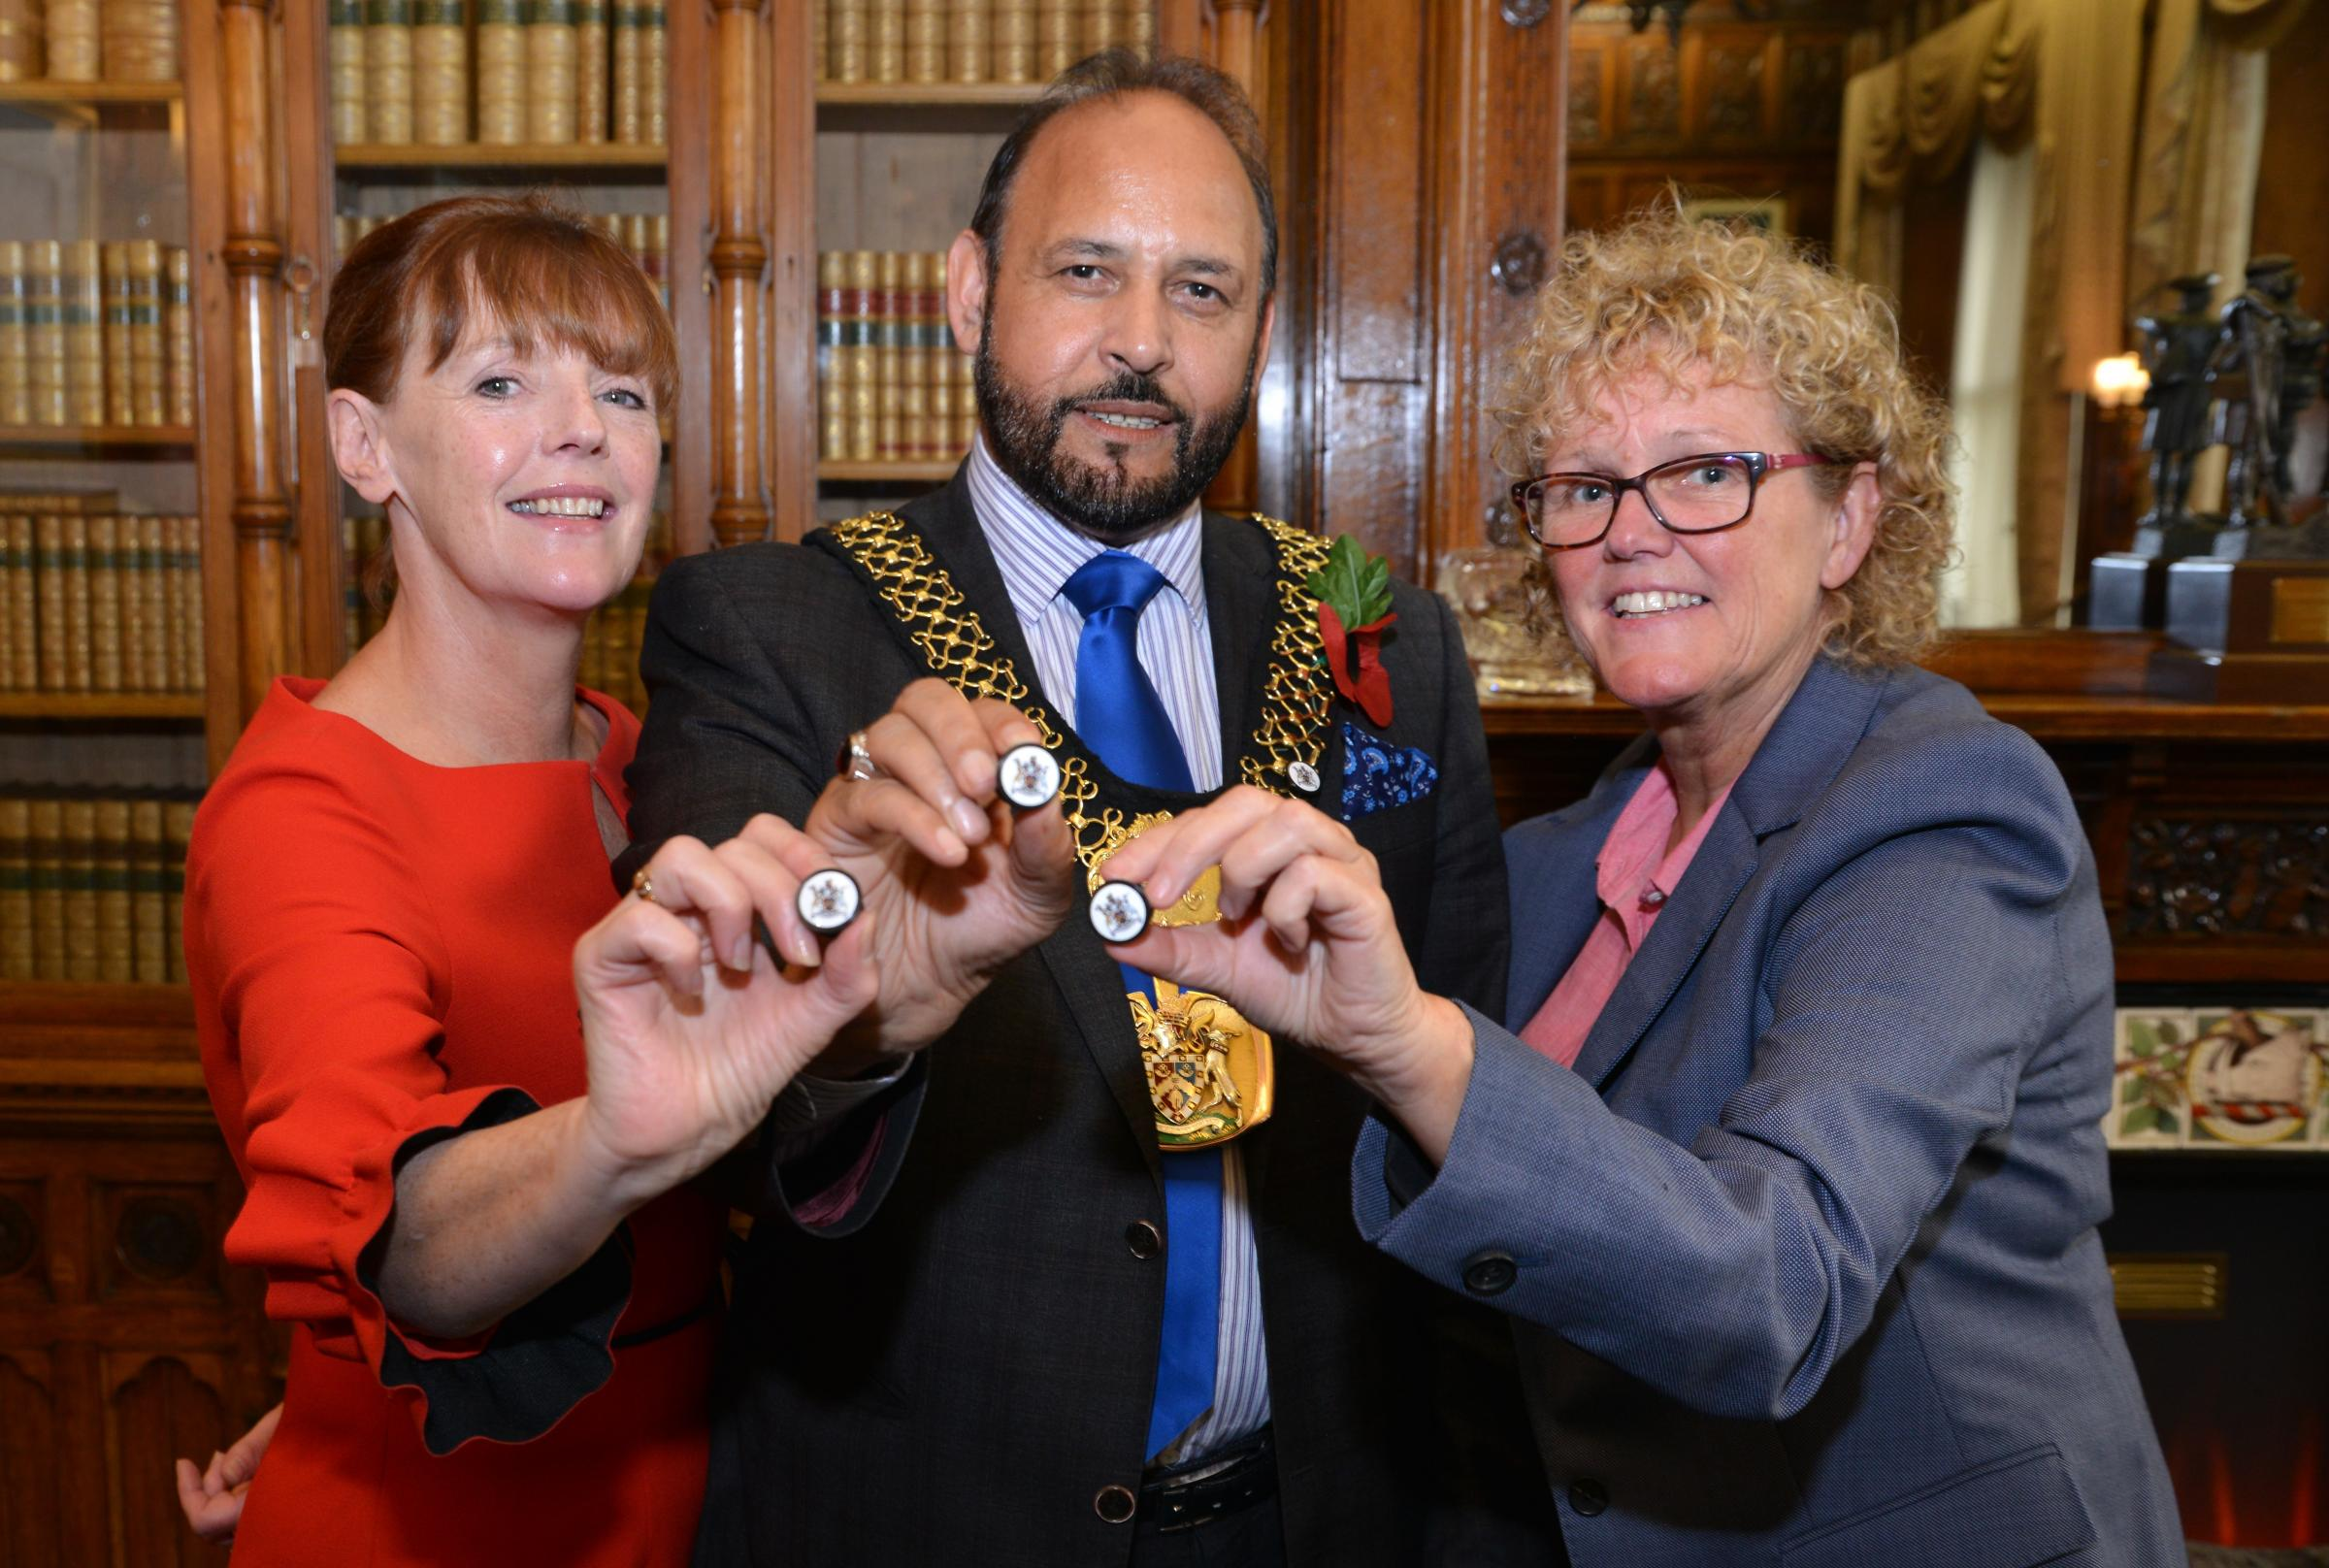 From left, Mary Armitage, Lord Mayor of Bradford Councillor Abid Hussain and Jacqui Smith